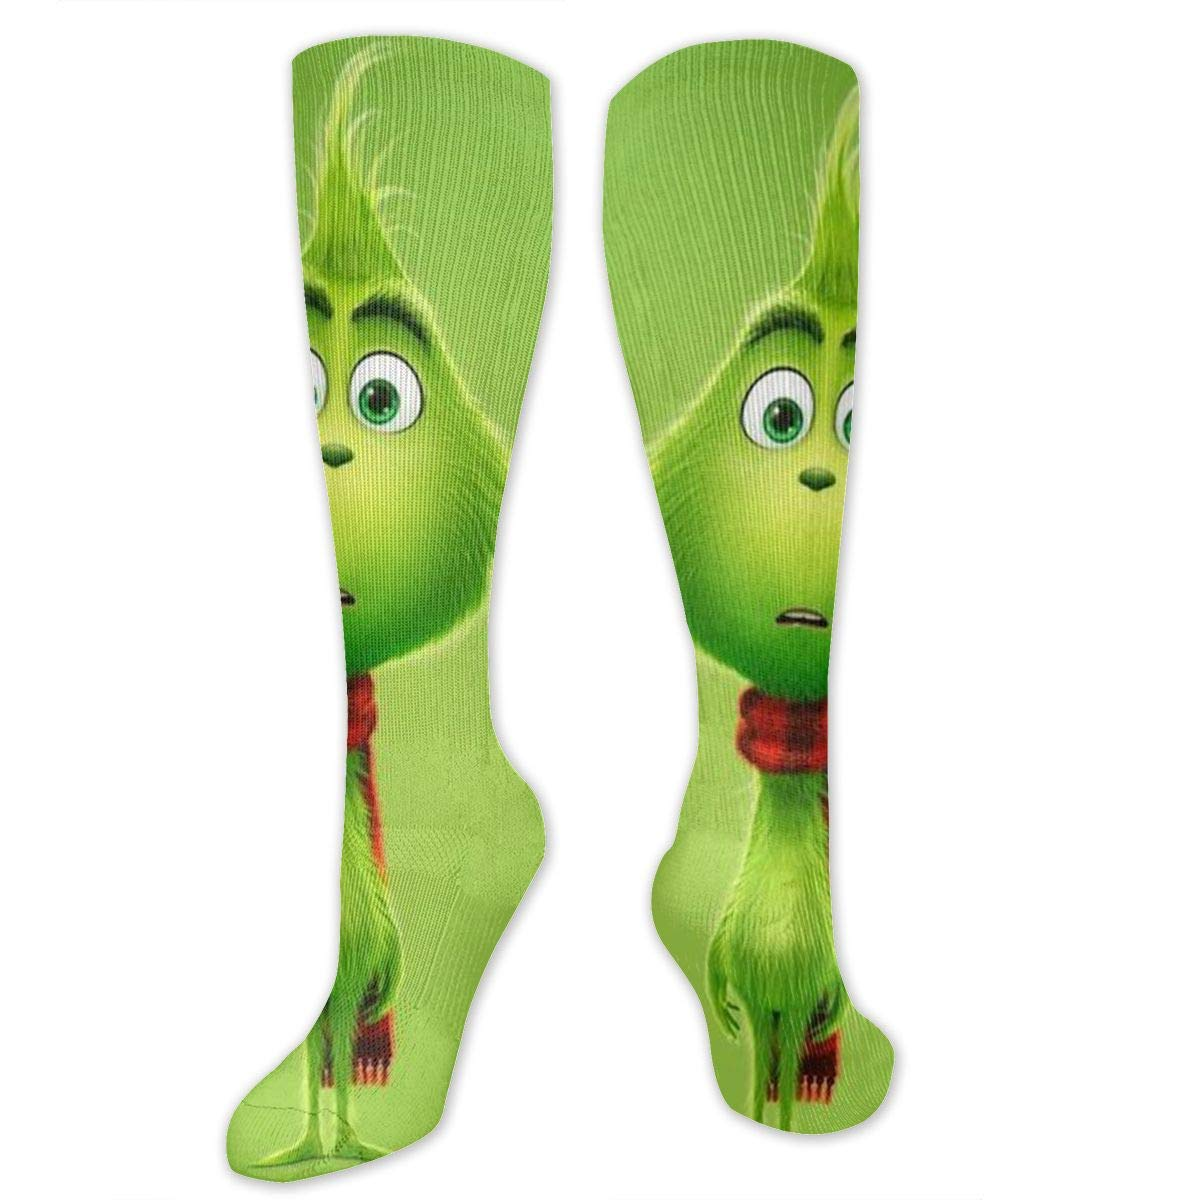 SARA NELL Knee High Socks The Curious Grinch Knee High Compression Stockings Athletic Socks Personalized Gift Socks for Men Women Teens Girls